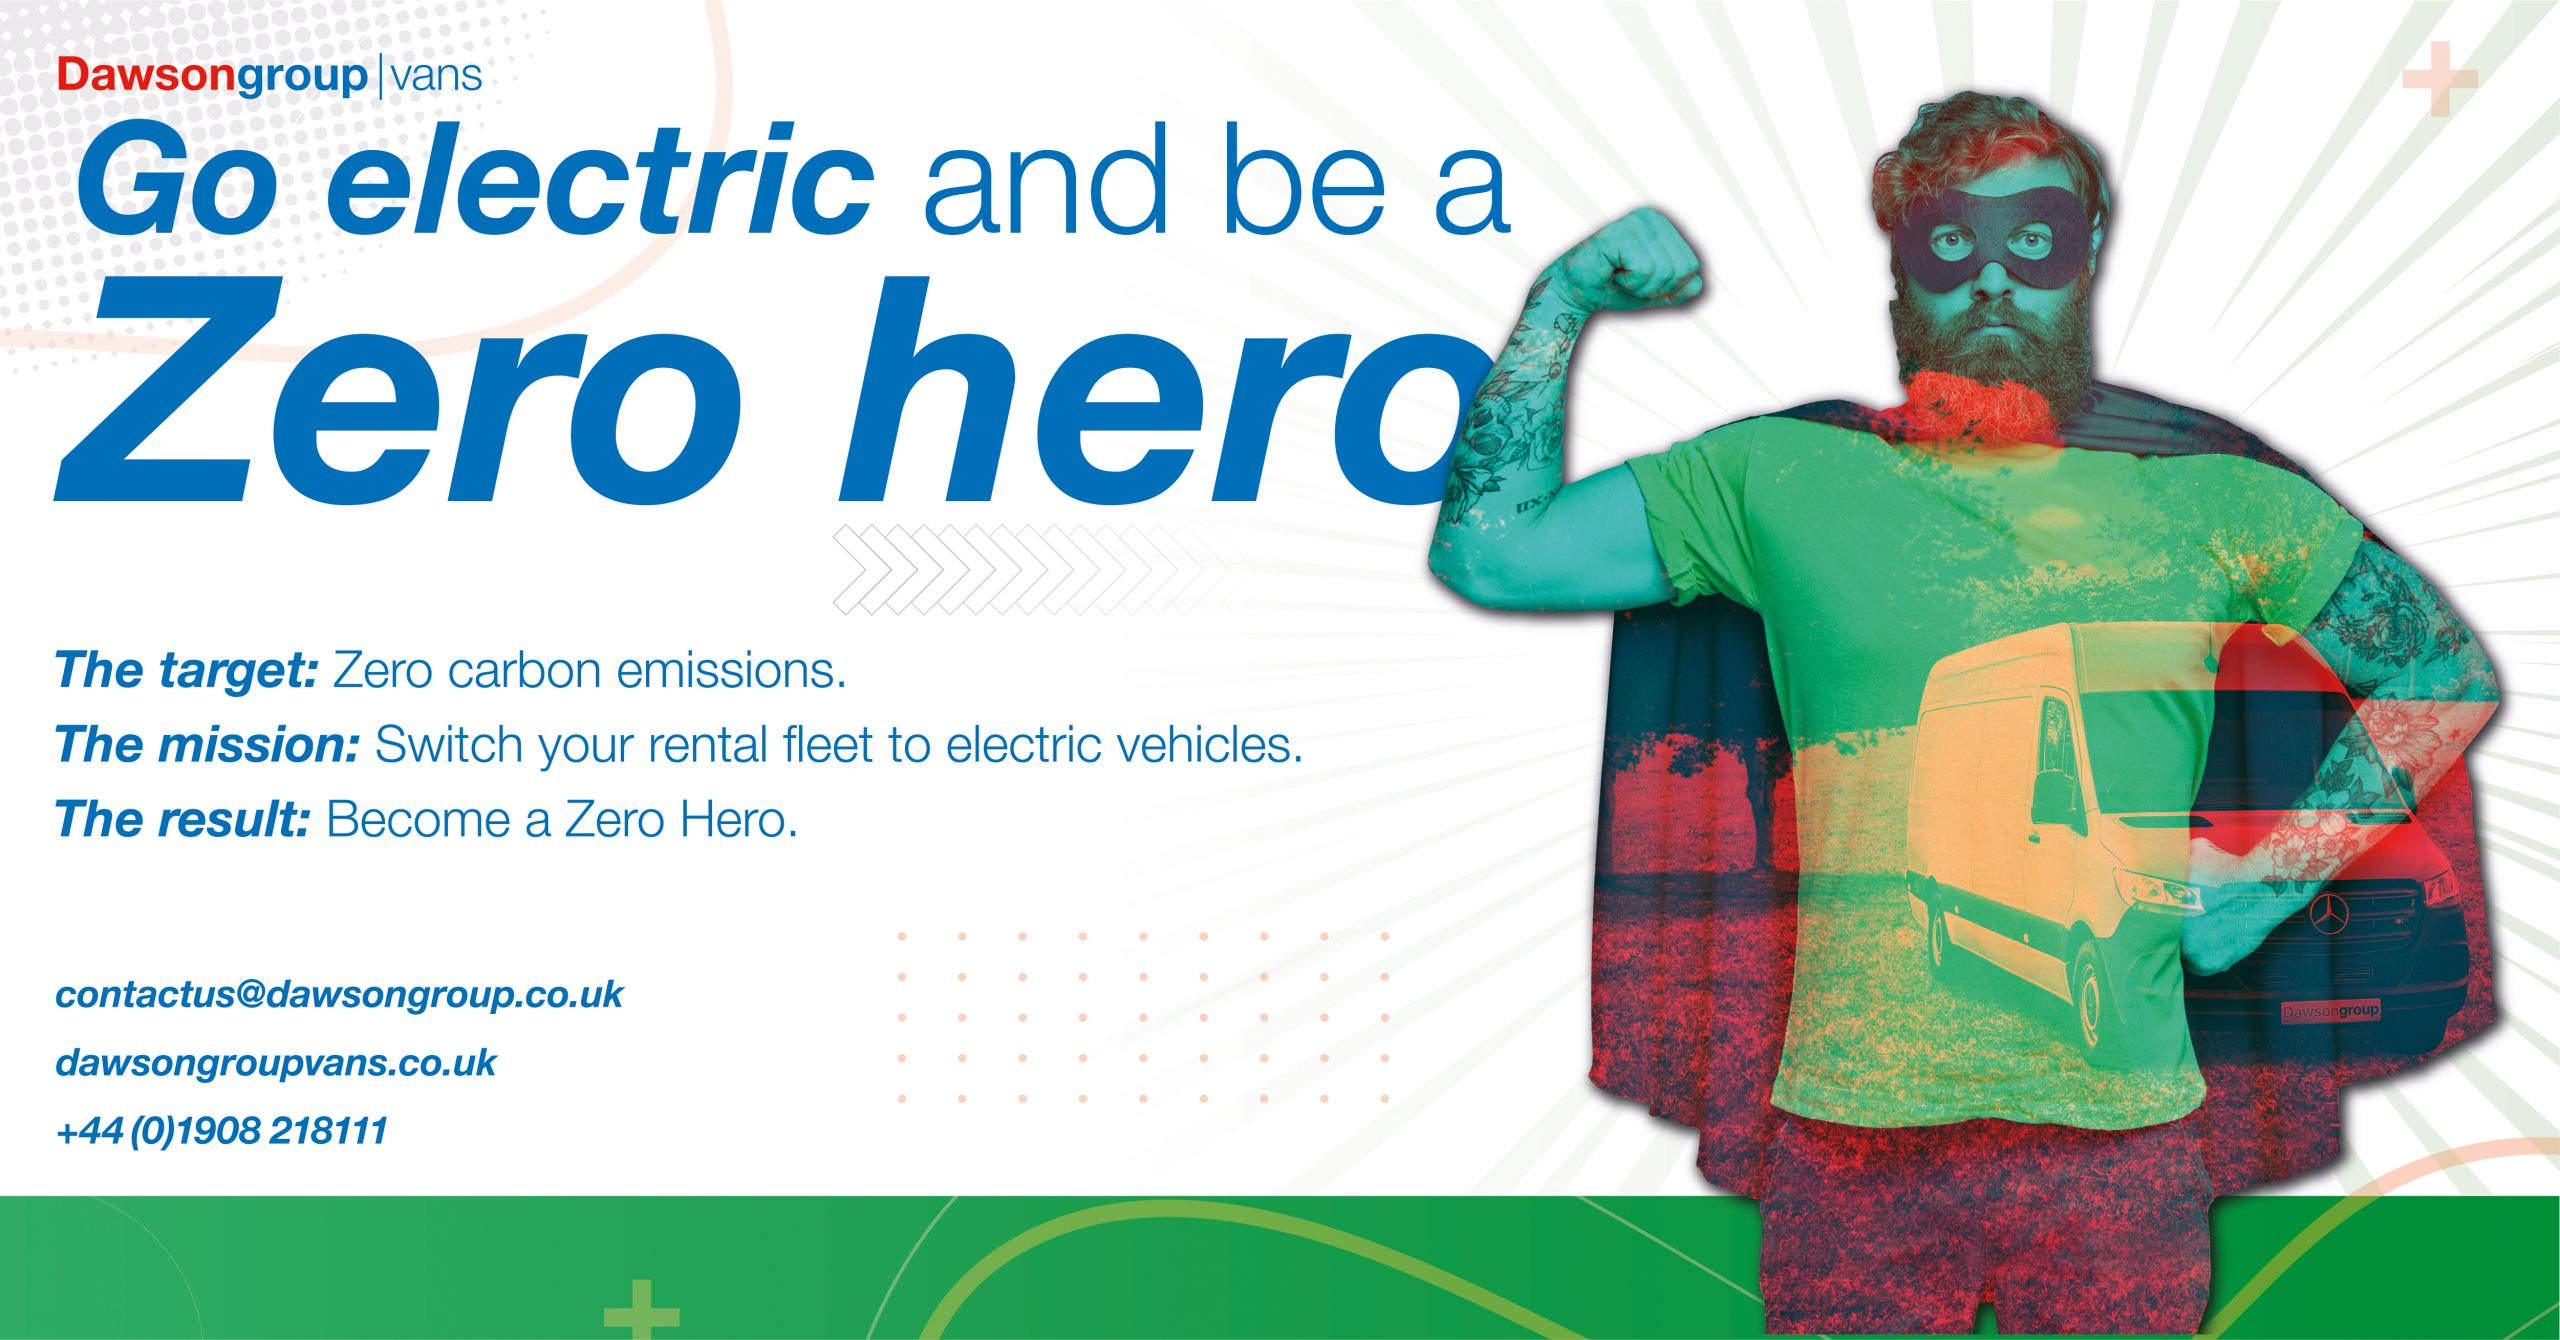 Go electric and be a zero hero